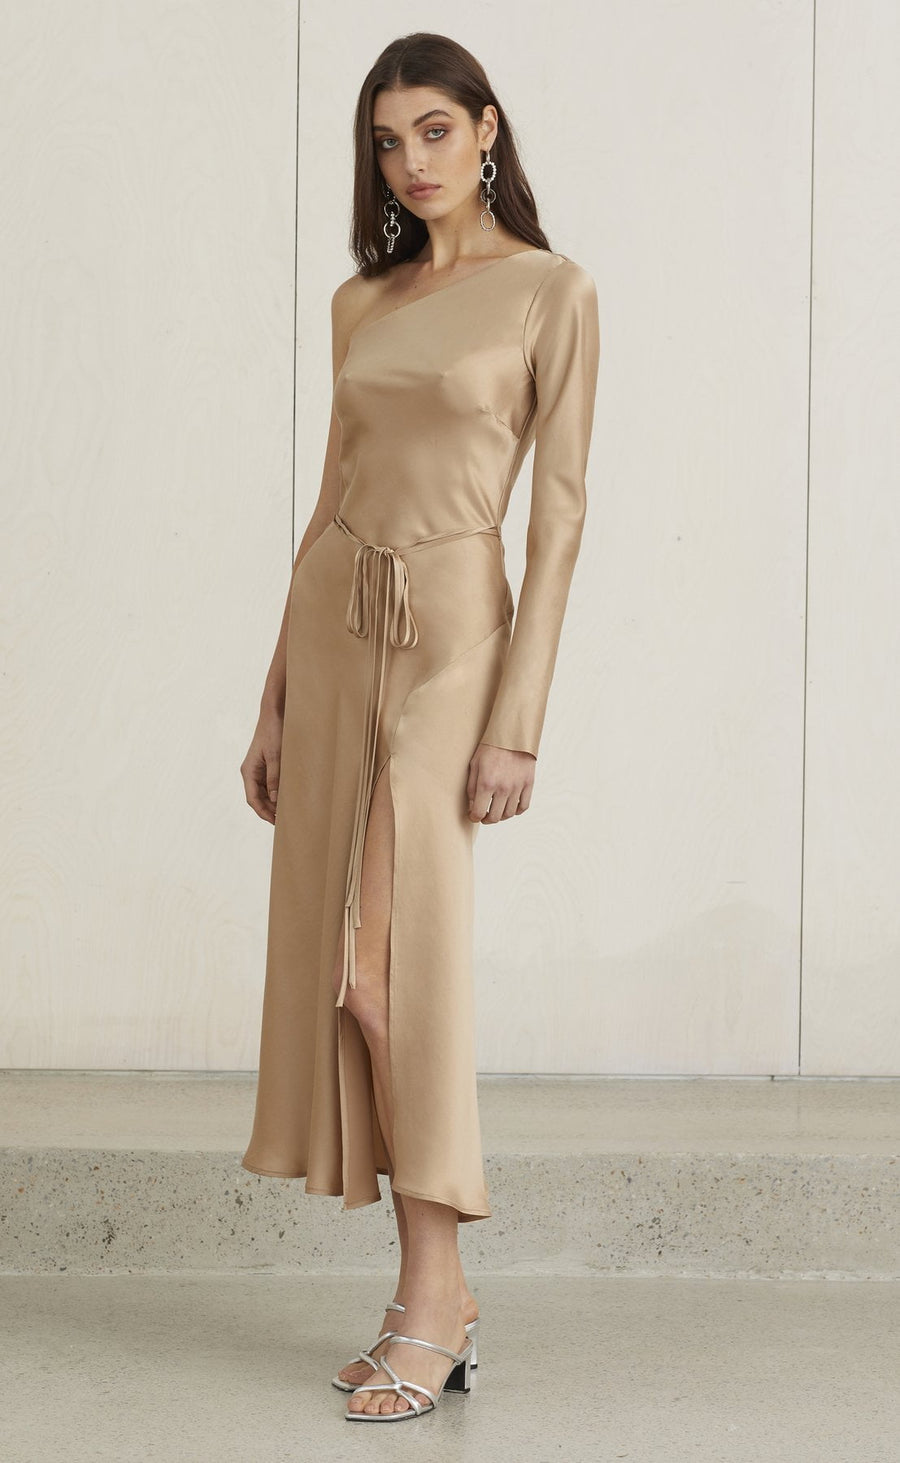 Bec and Bridge Classic One Shoulder Dress Camel